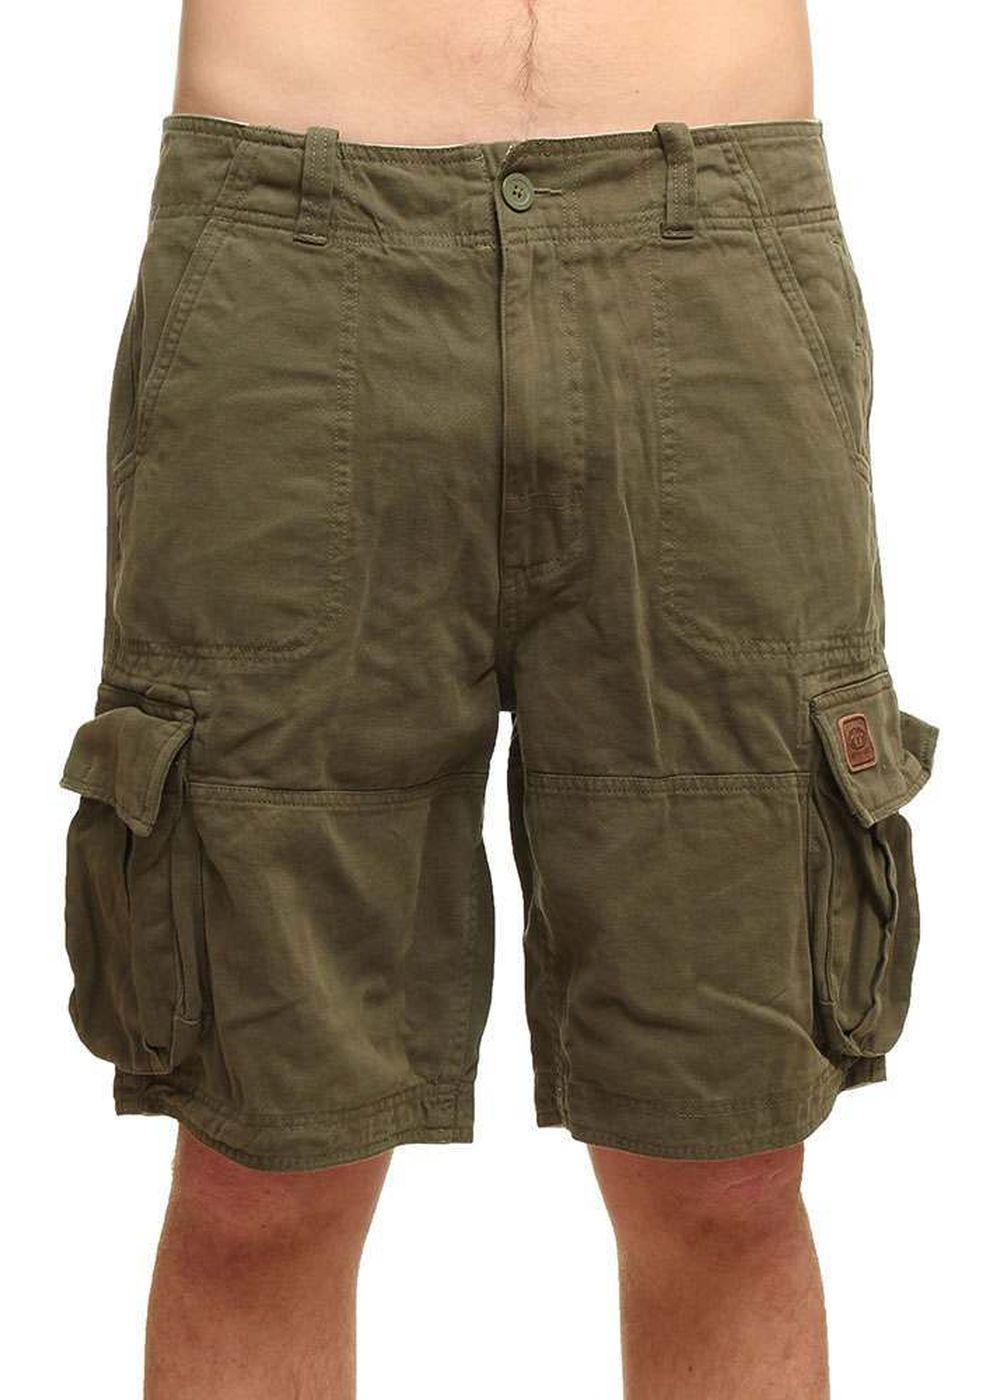 ANIMAL AGOURAS CARGO SHORTS Olive